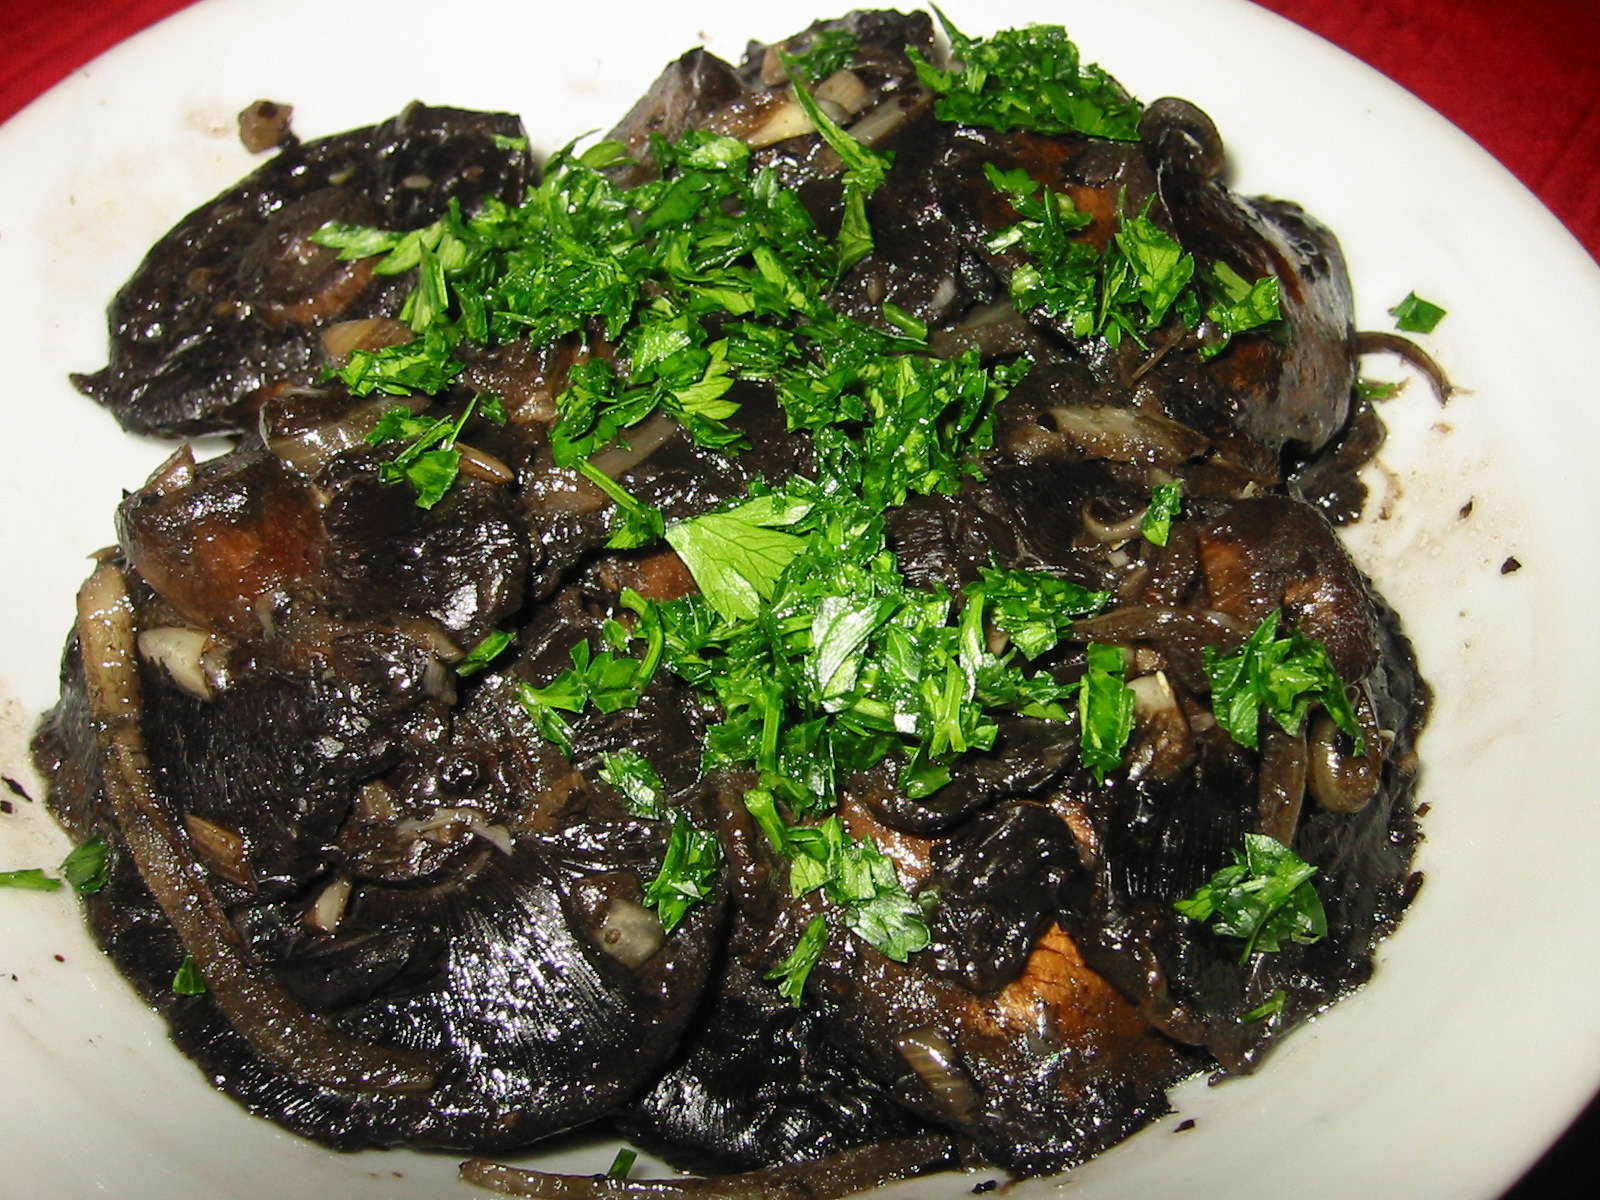 Grilled garlic and onion mushrooms topped with fresh parsley